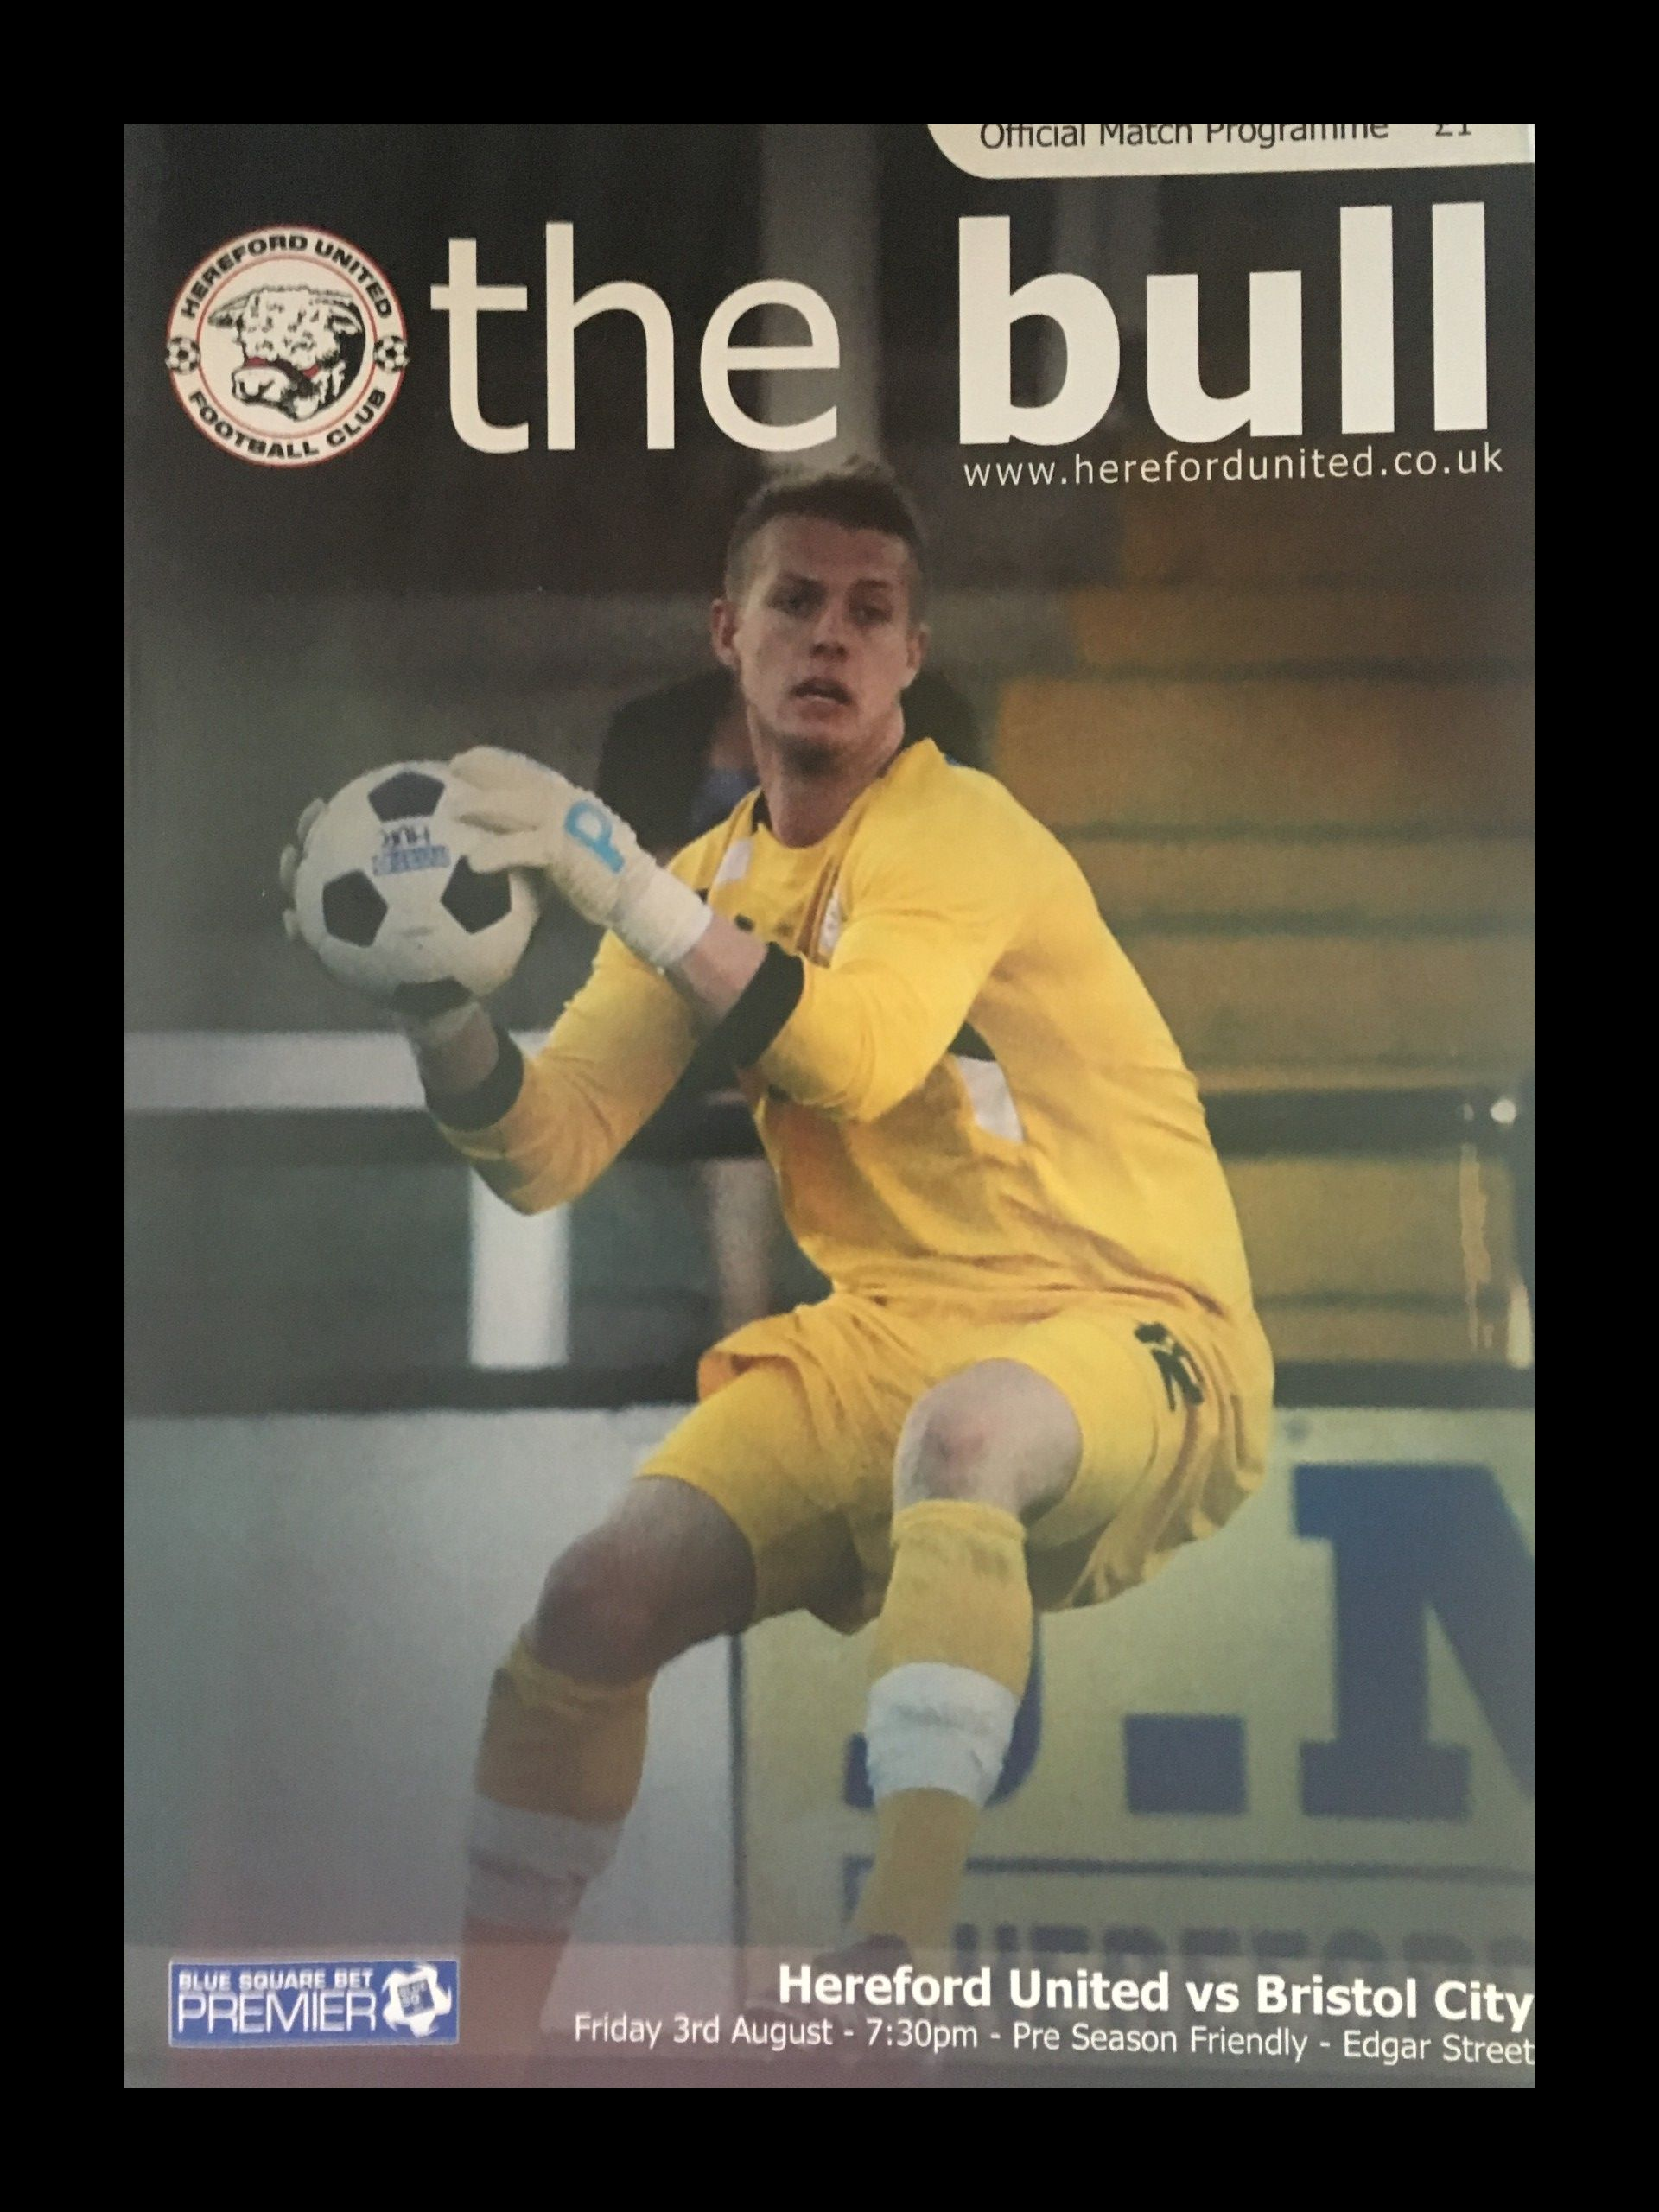 Hereford United v Bristol City 03-08-2012 Programme